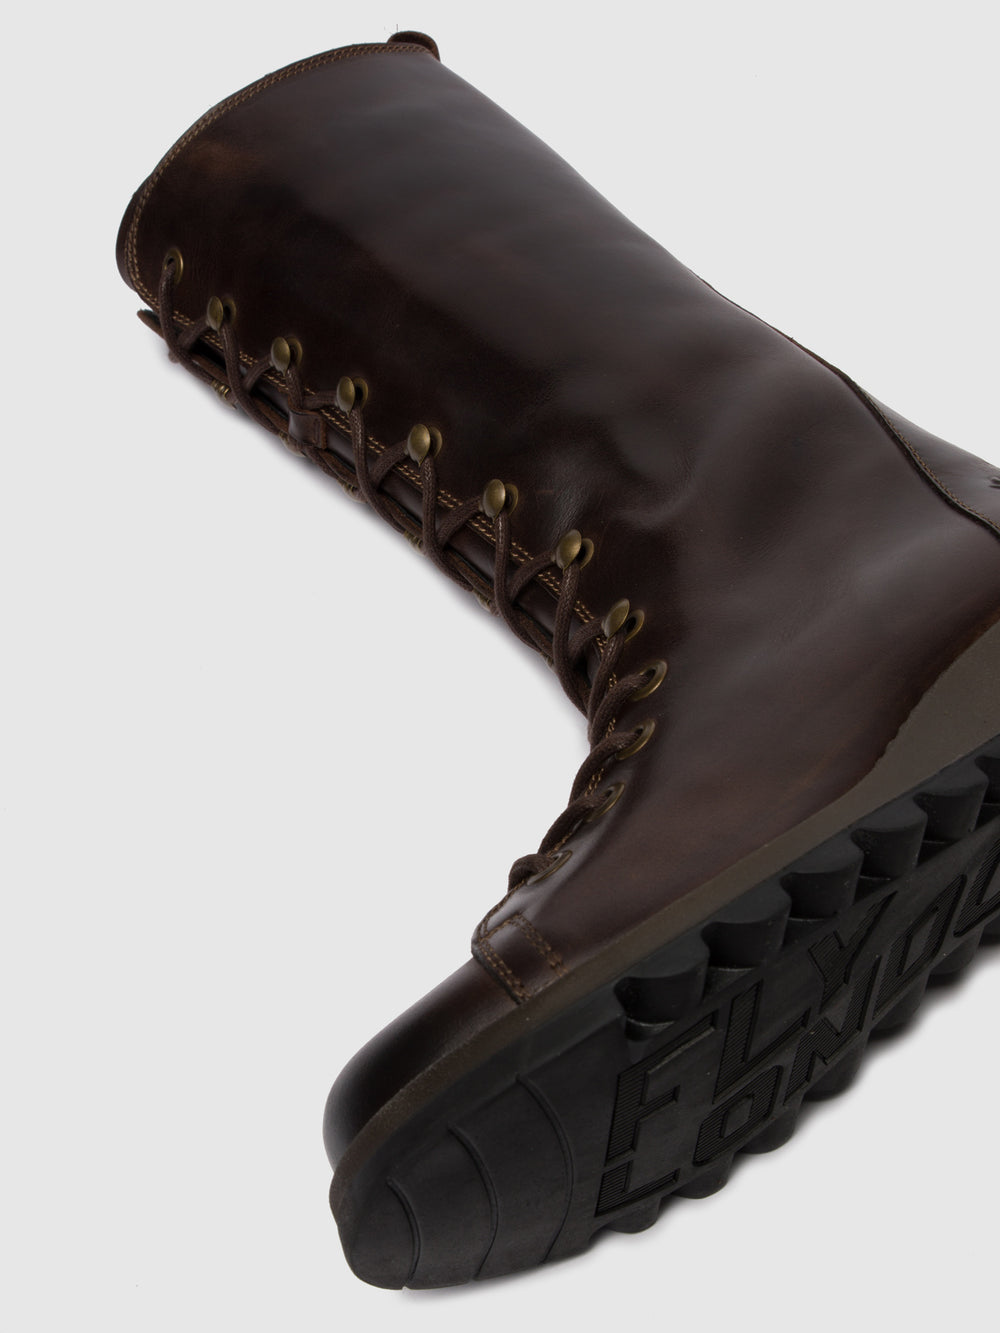 Lace-up Boots SYAS652FLY RUG DK. BROWN